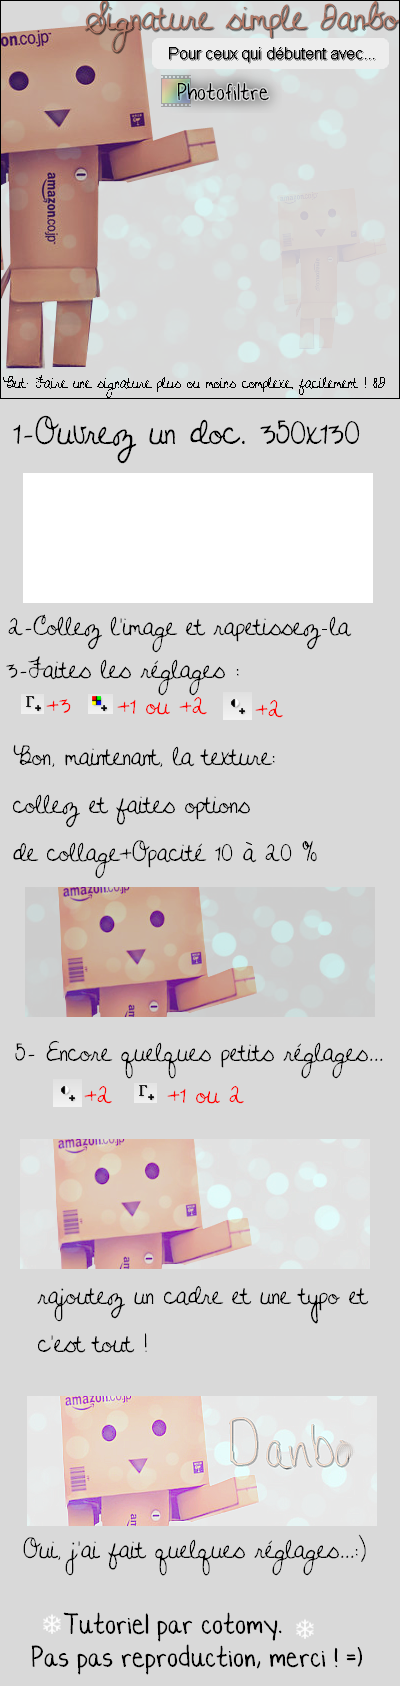 Tutoriel-Danbo [photofiltre simple]